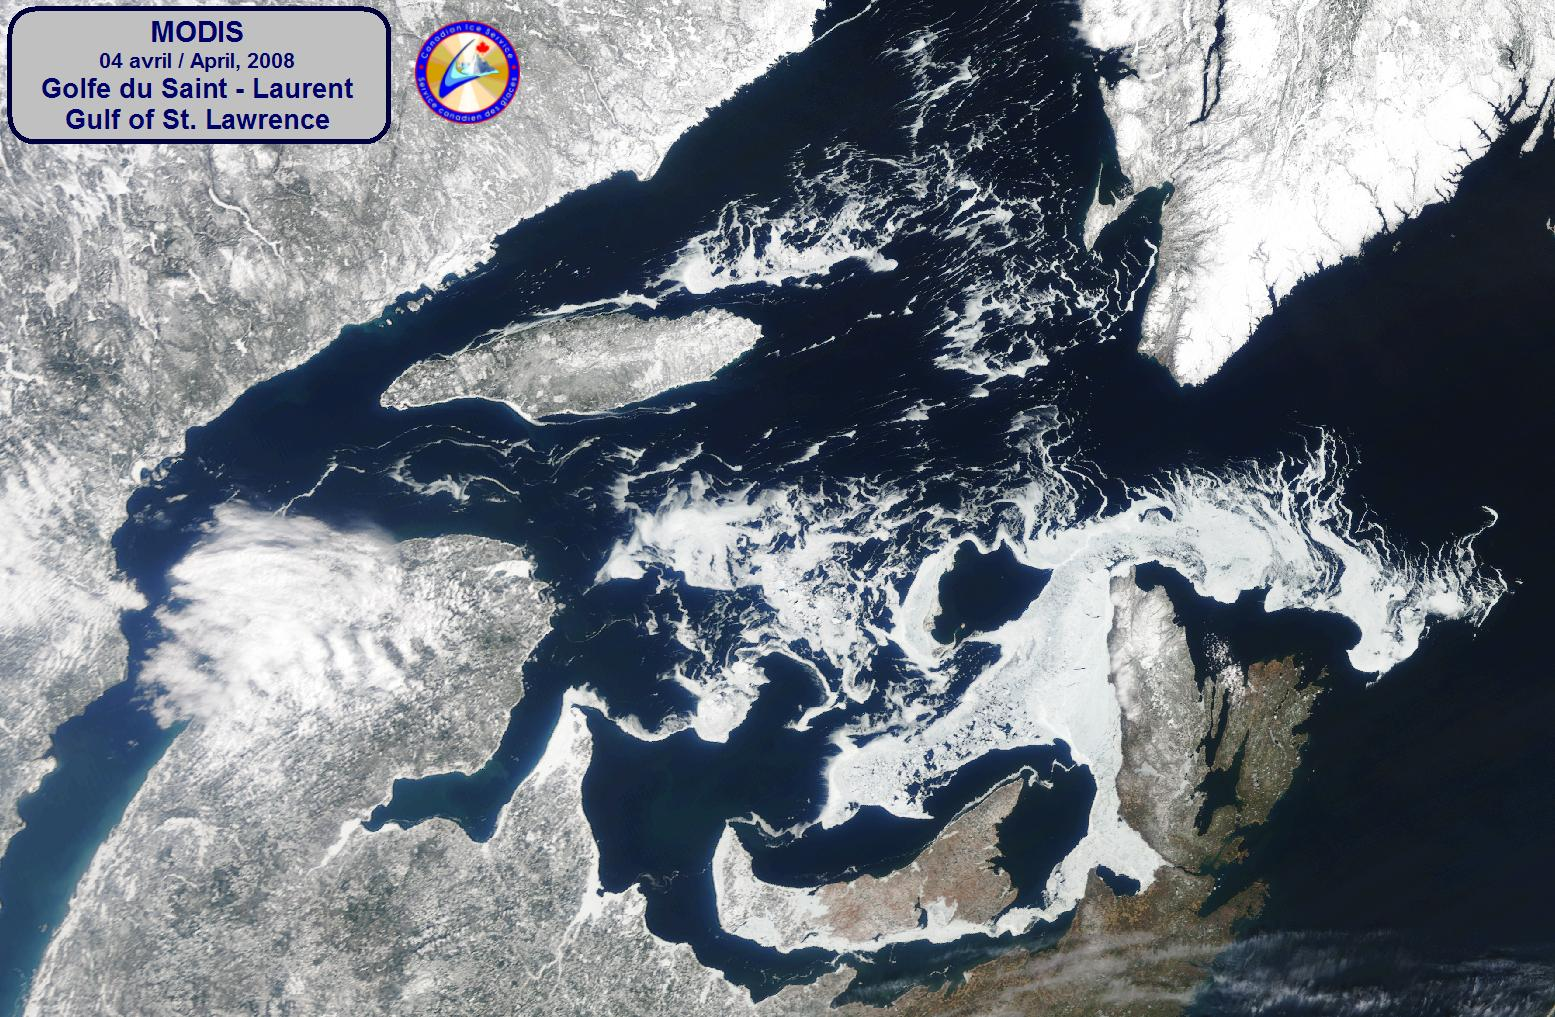 Image of the Gulf of St. Lawrence